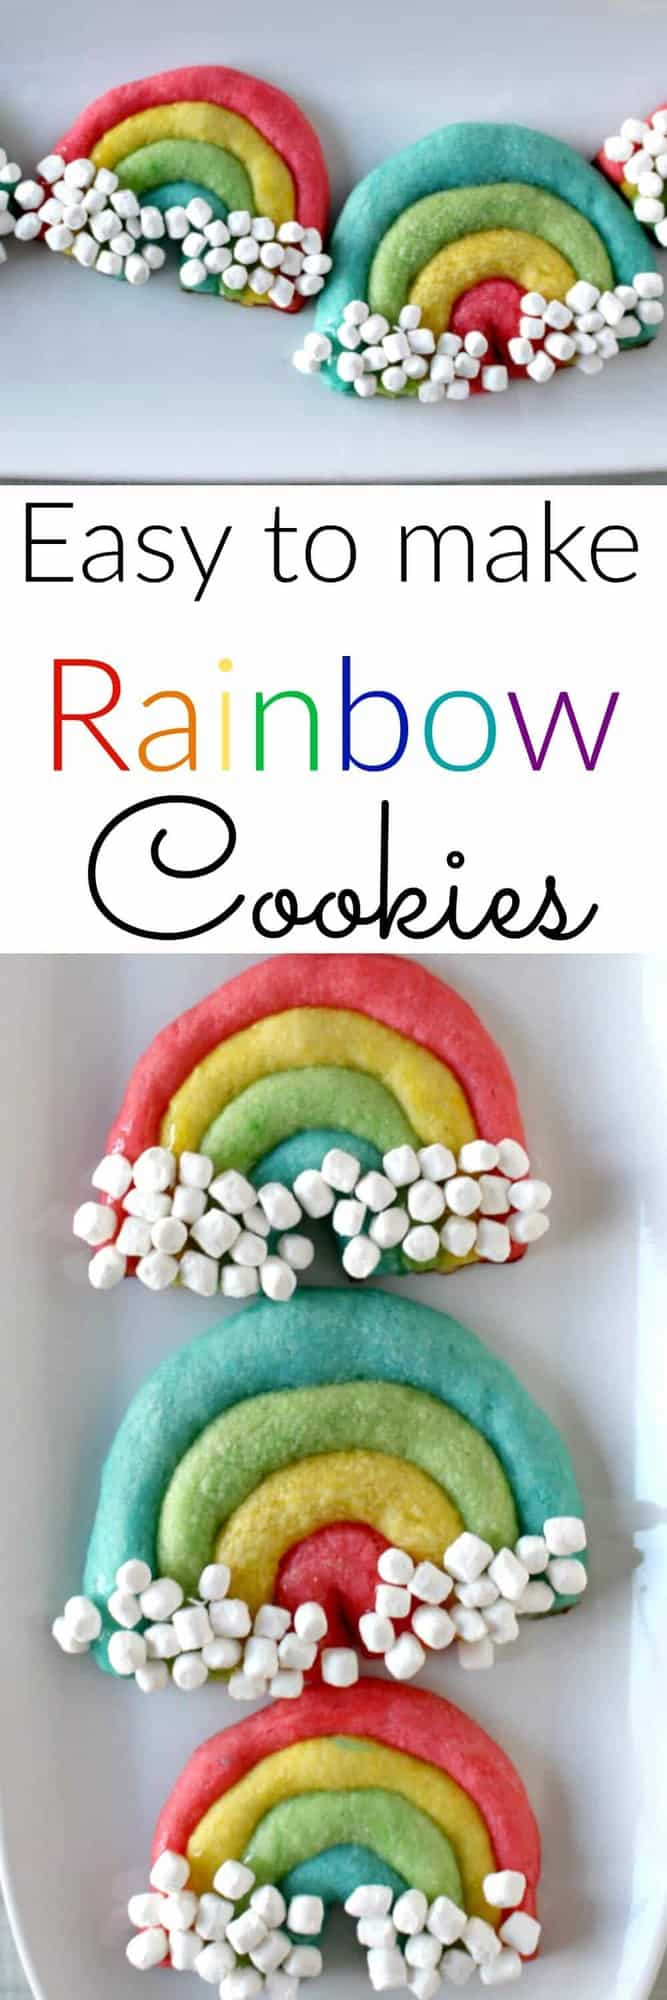 Easy to make Rainbow Cookies - perfect for St Patrick's Day, Easter or just to brighten someone's day!